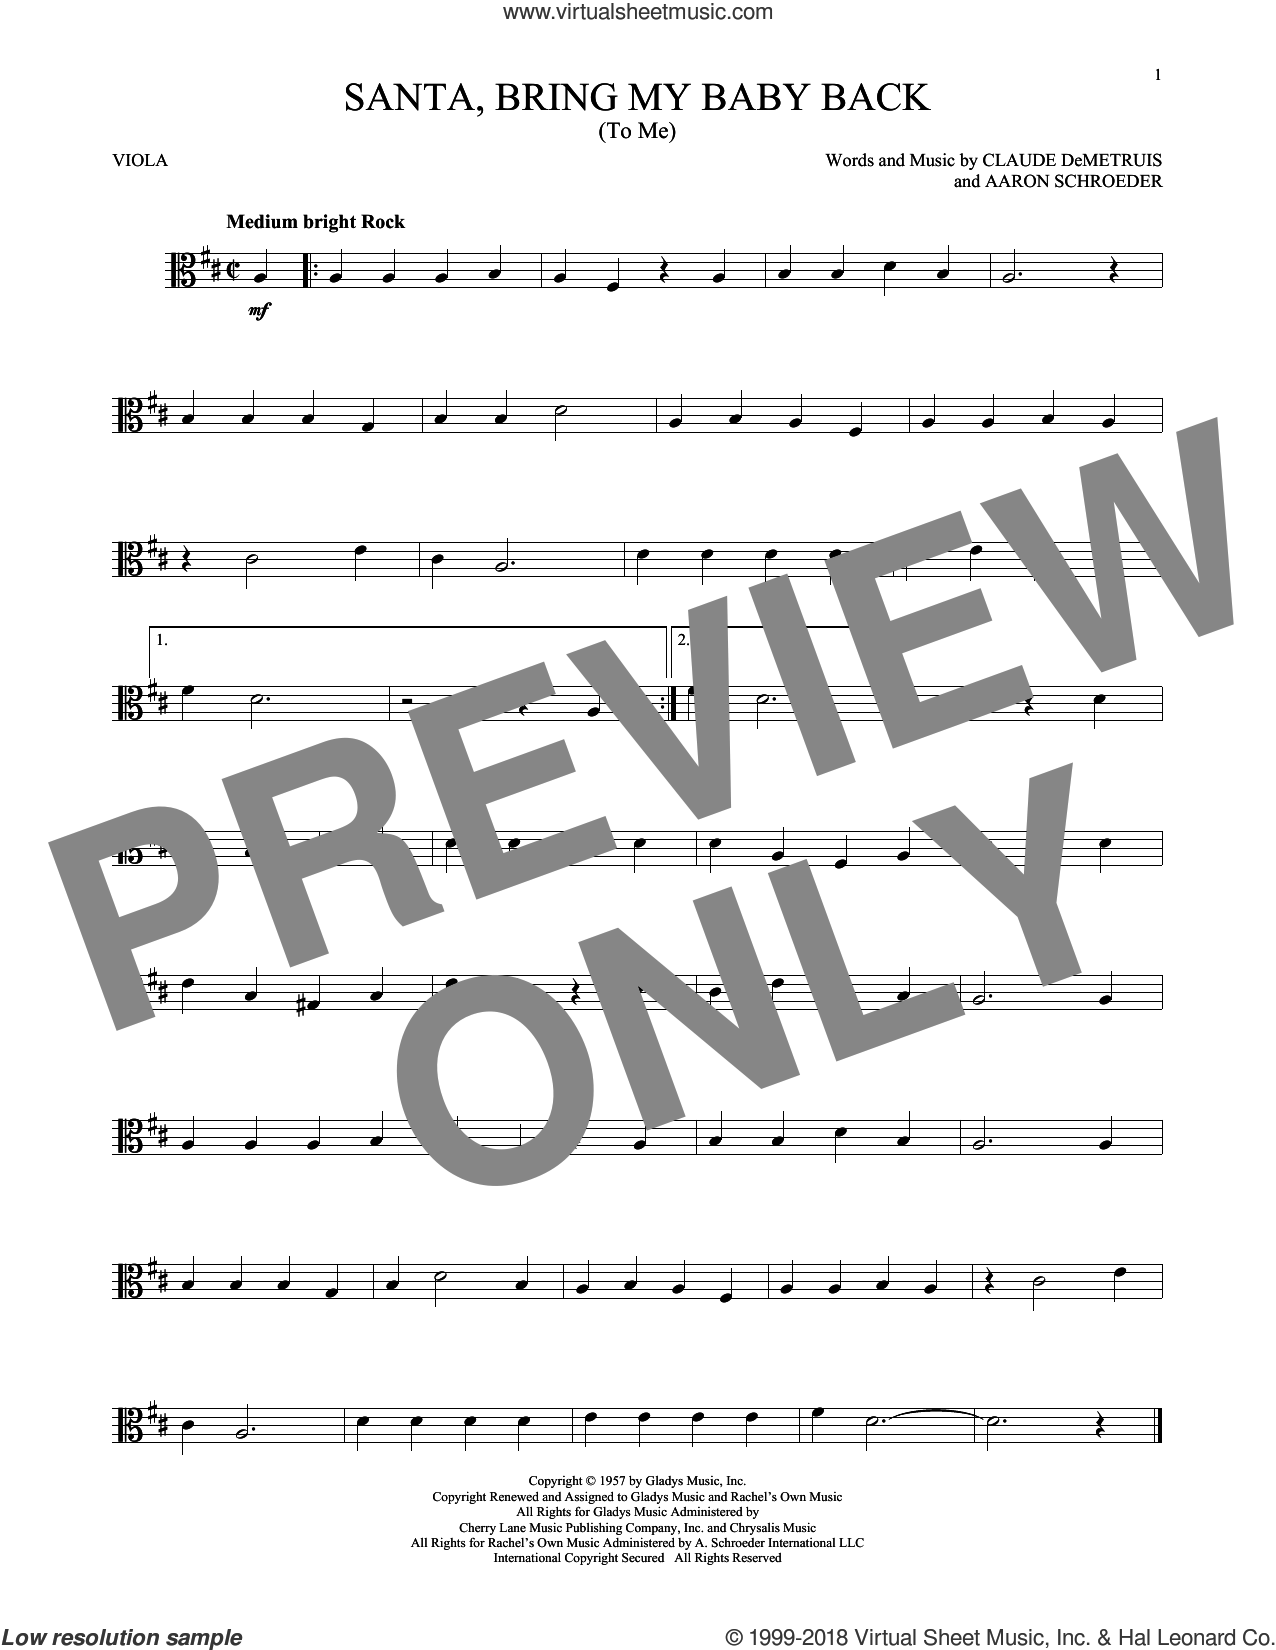 Santa, Bring My Baby Back (To Me) sheet music for viola solo by Elvis Presley, Aaron Schroeder and Claude DeMetruis, intermediate skill level